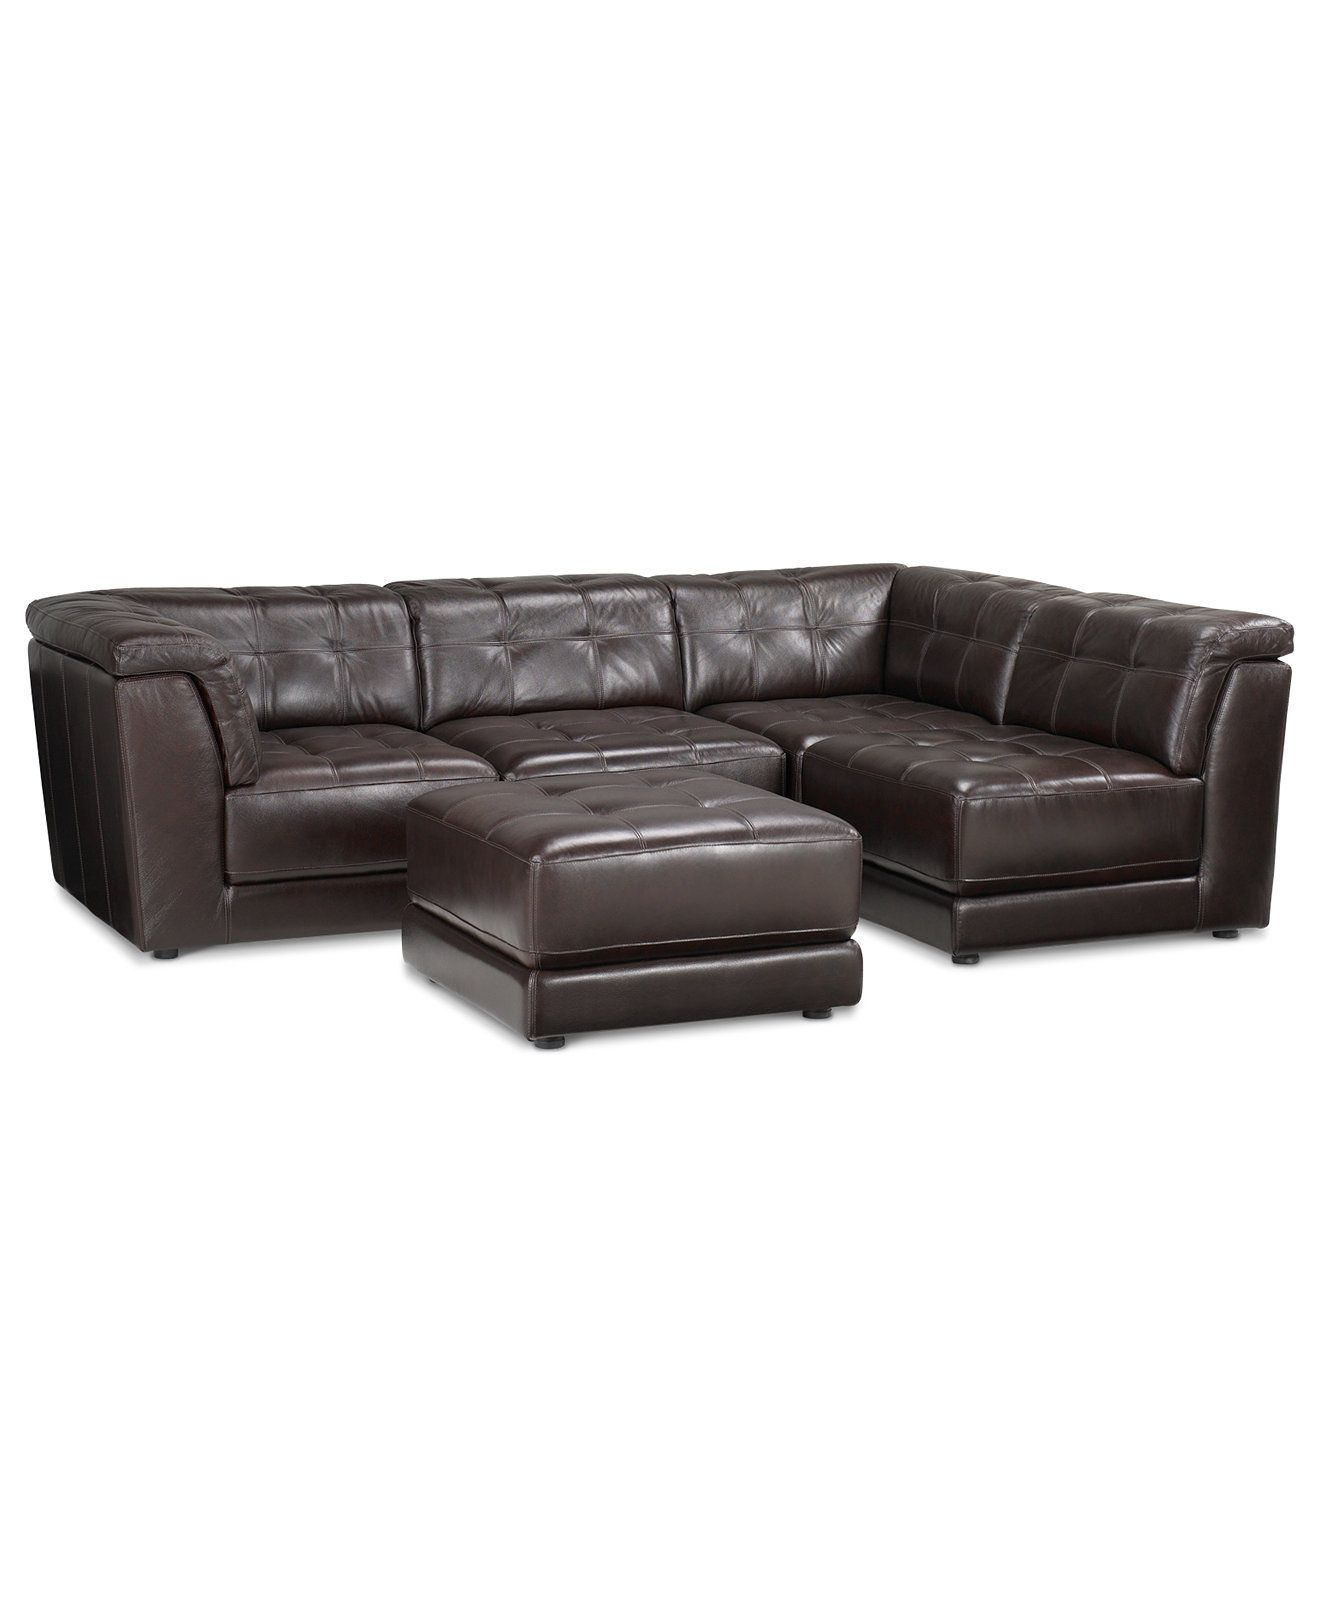 Stacey Leather Sectional Sofa 5 Piece Modular Pit 2 Armless Chairs 2 Square Corners And Ottoman Leather Sectional Sofas Sectional Sofa Leather Modular Sofa